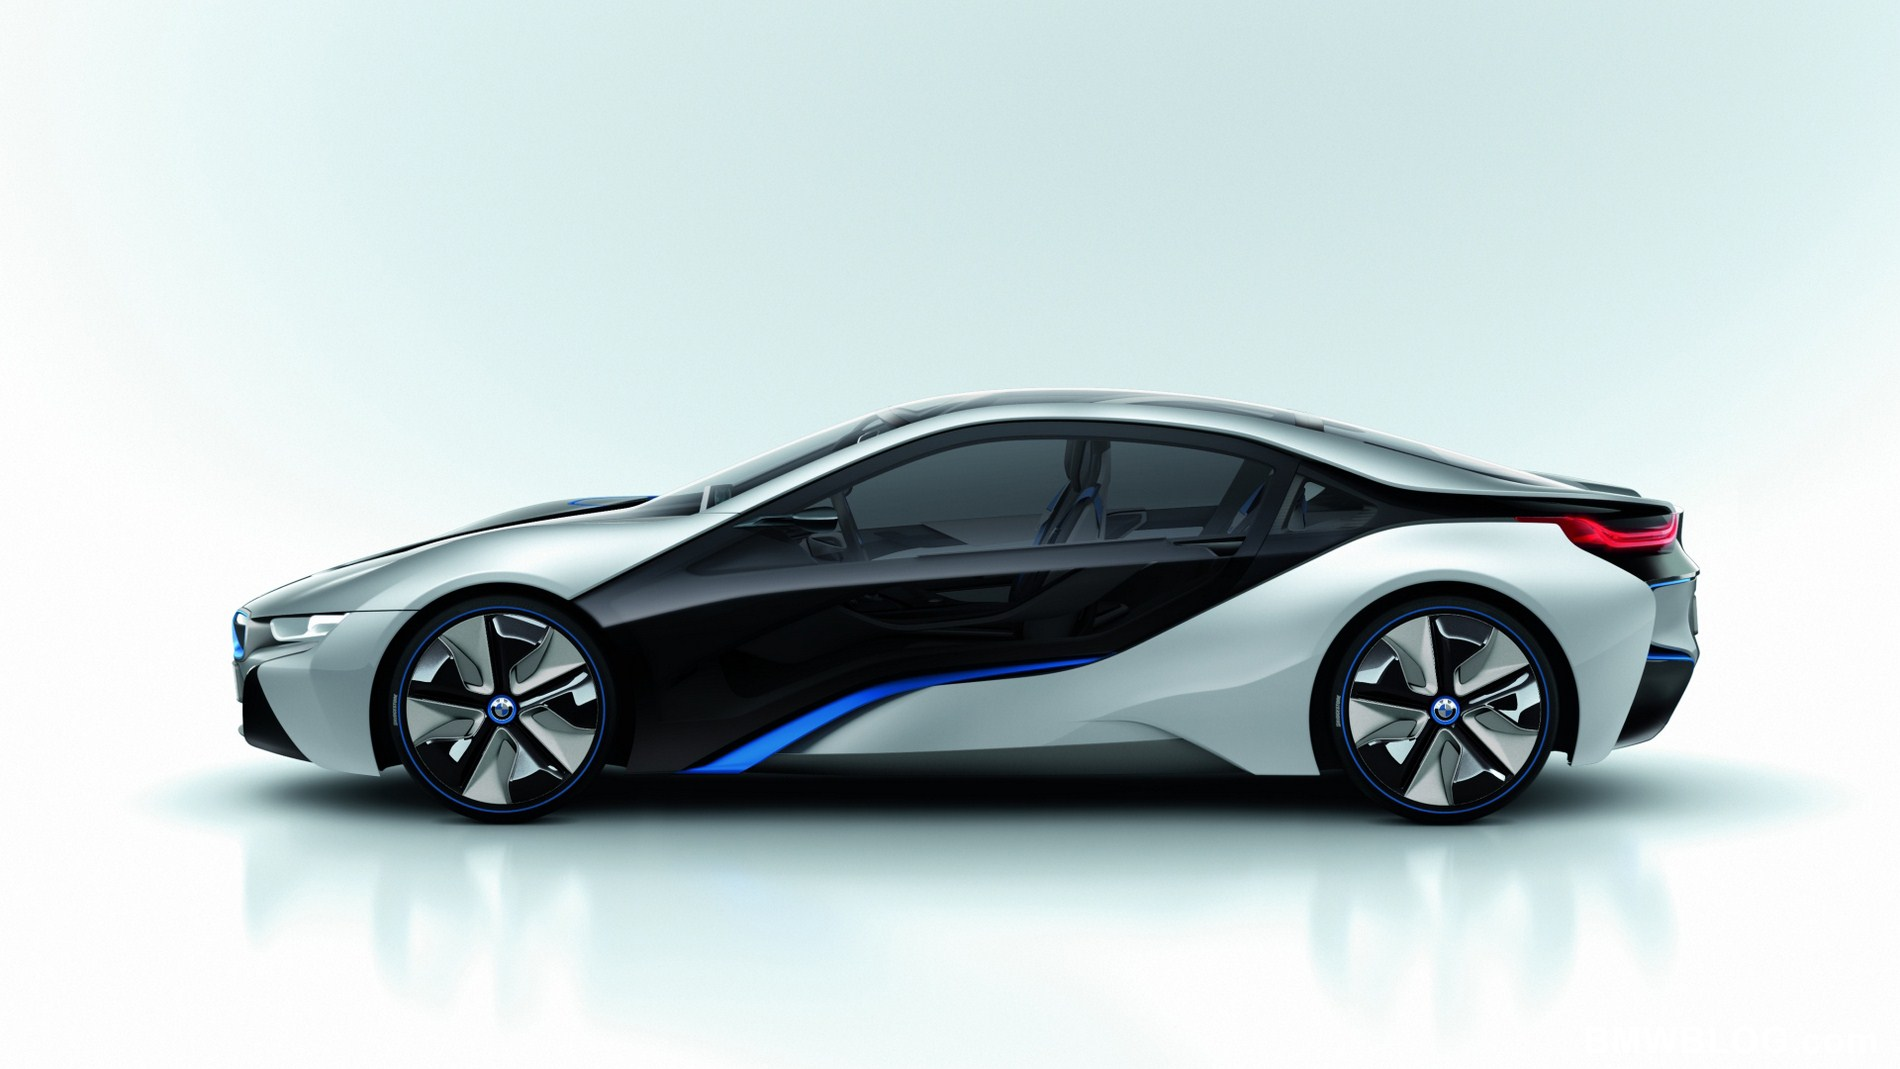 Ruminations On The Production Bmw I8 2012 bmw i8 i3 concept cars 6